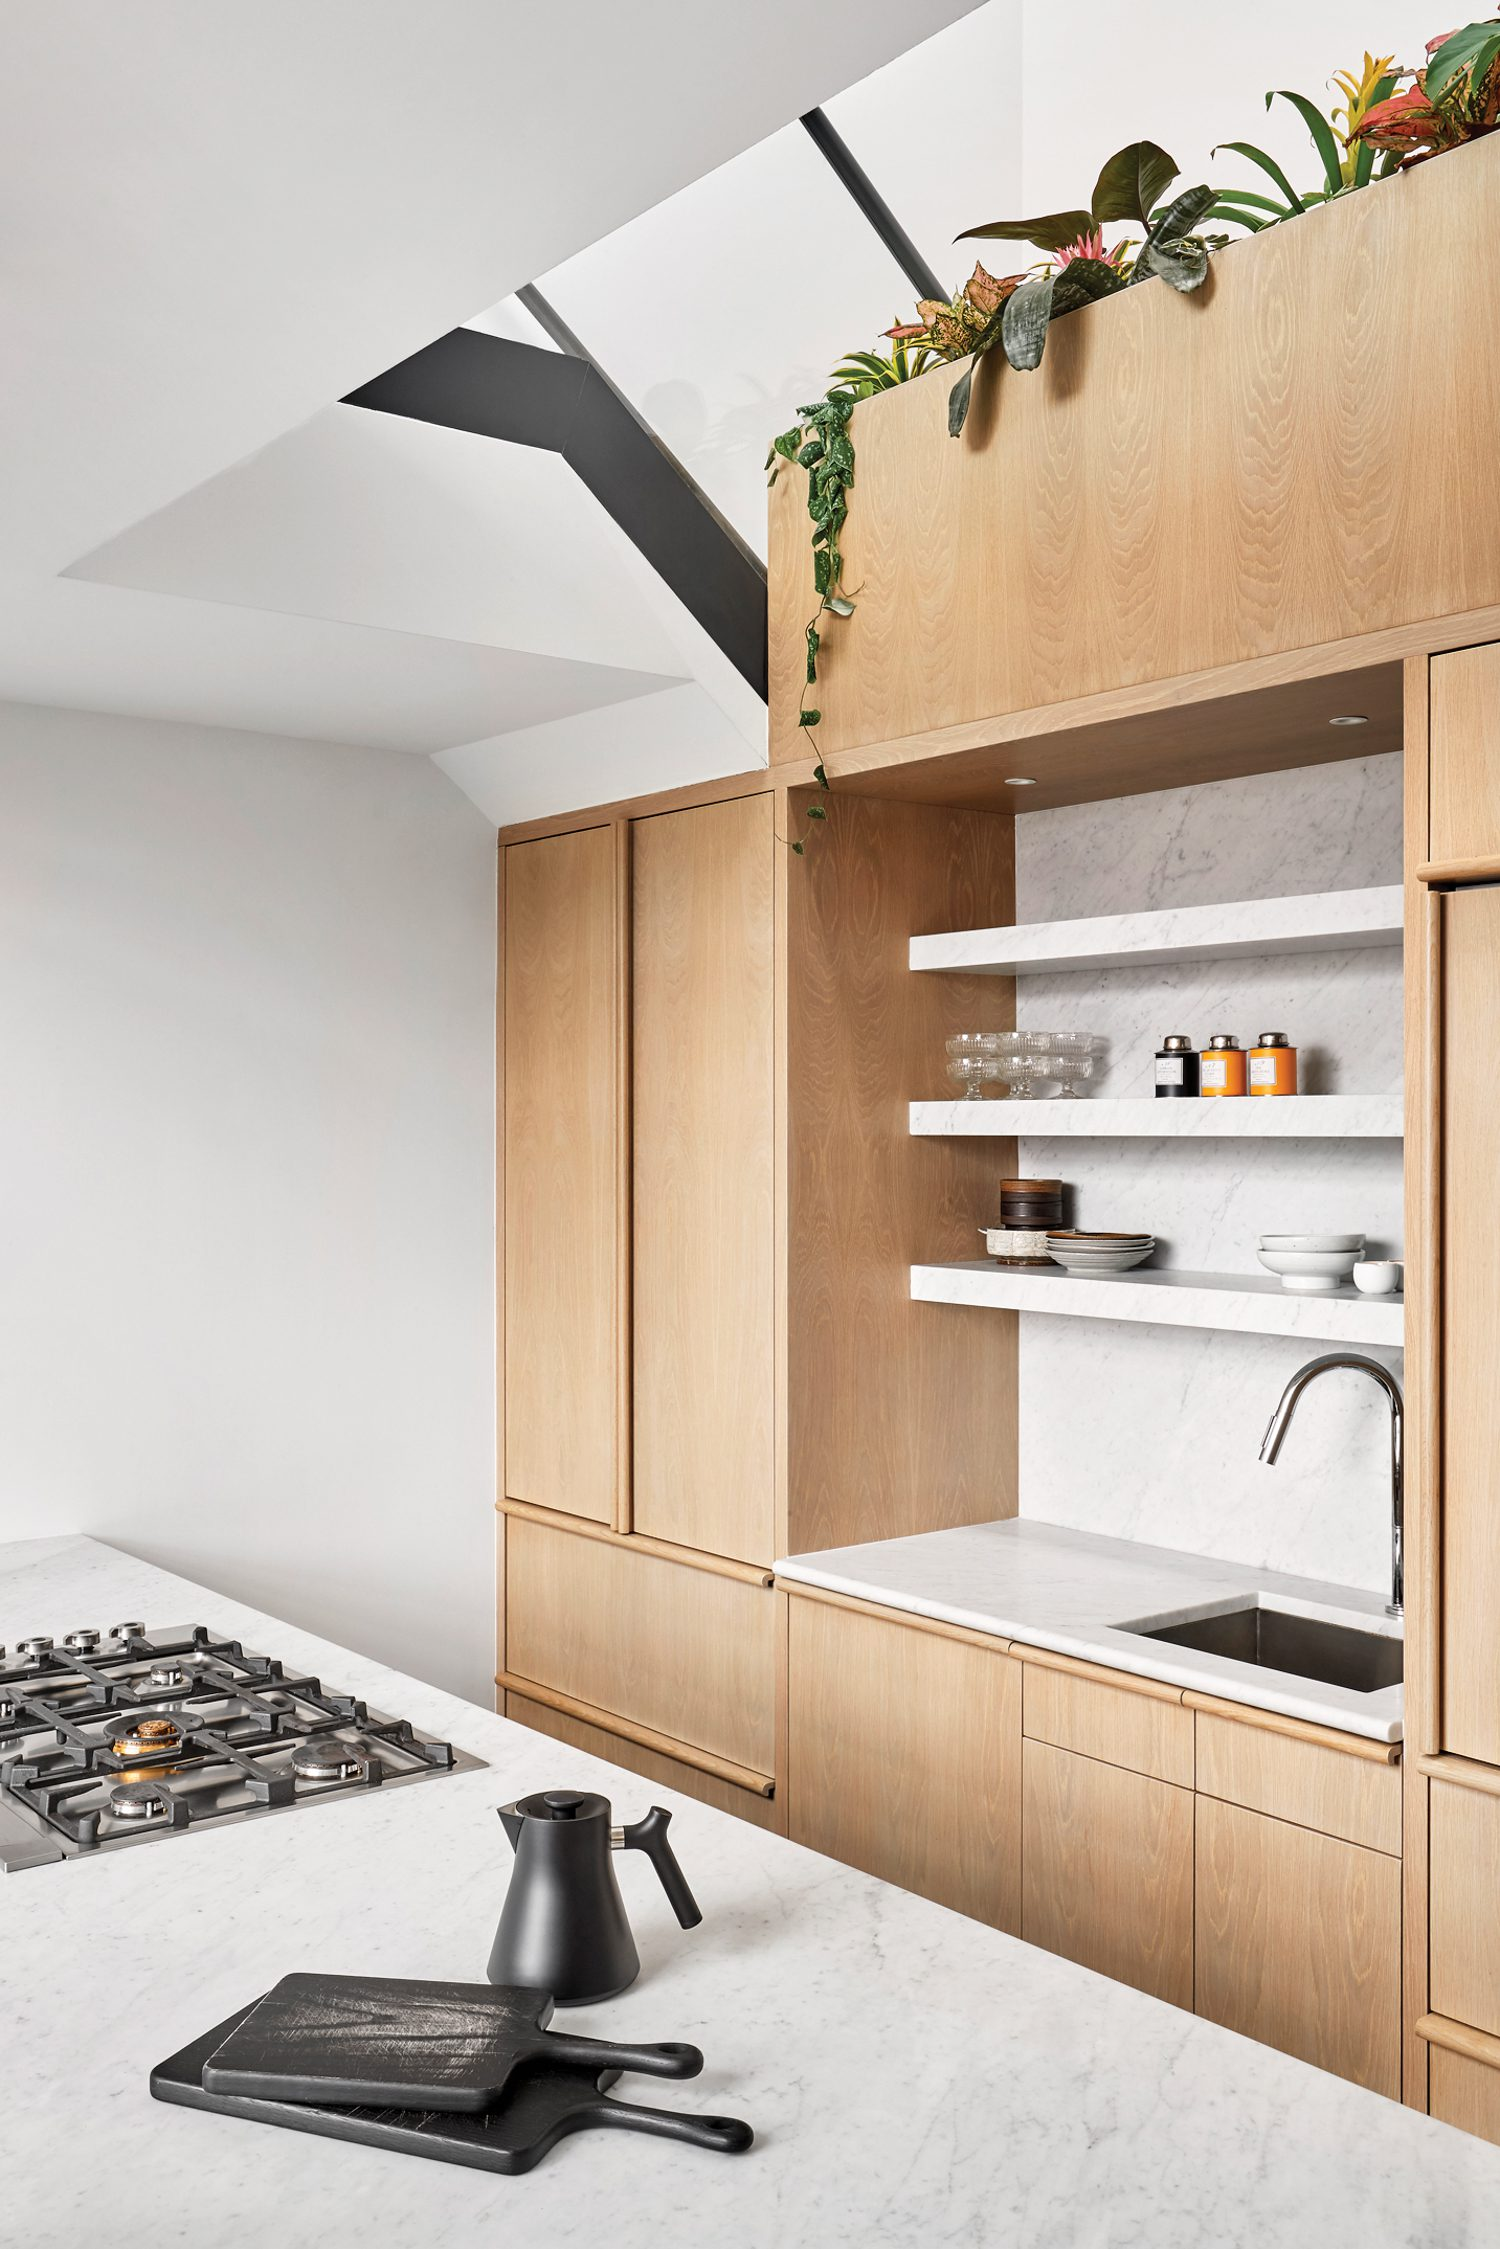 The island top, shelving, and backsplash are Cararra marble.